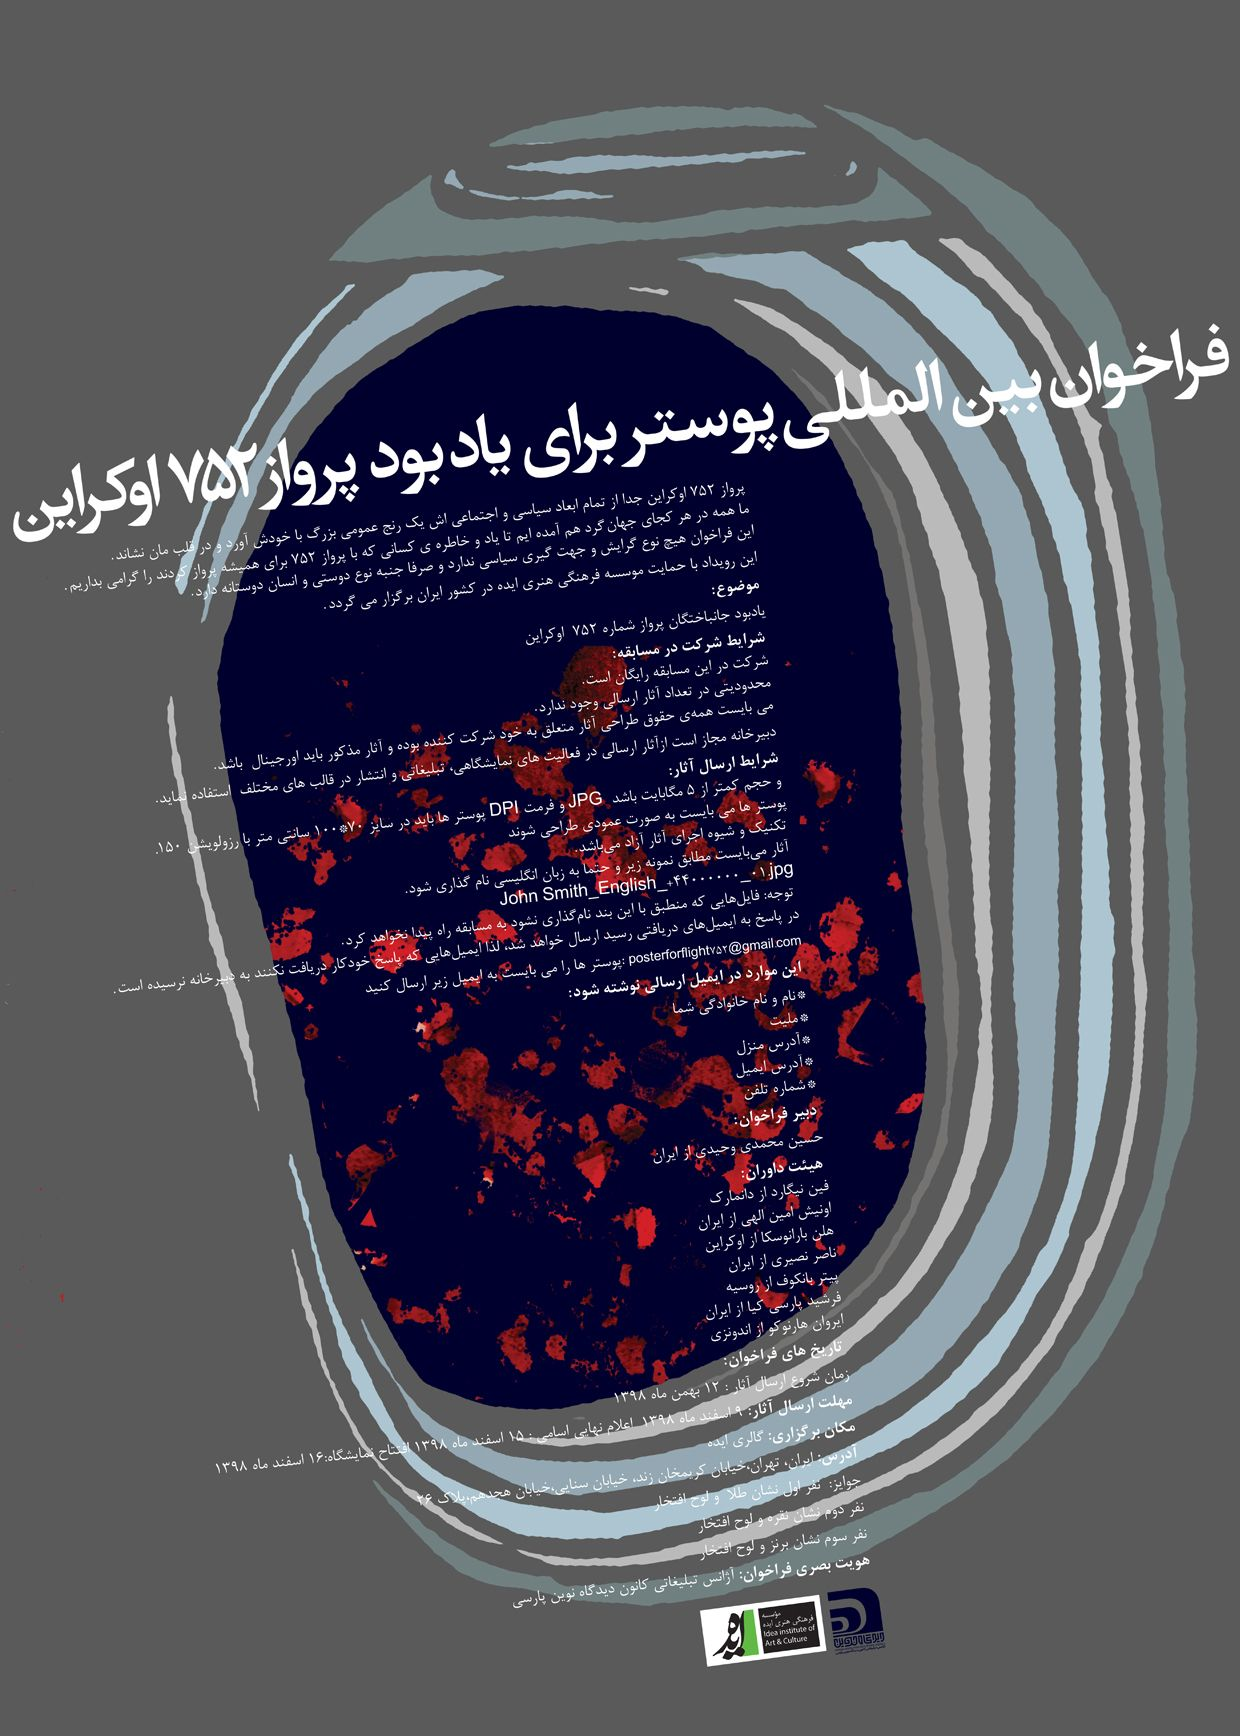 Onish Aminelahi Jury Of International Poster Competition Poster For Memorial Flight 752 Ukraine اونیش امین الهی In 2020 Poster Competition Insurance Call For Entry